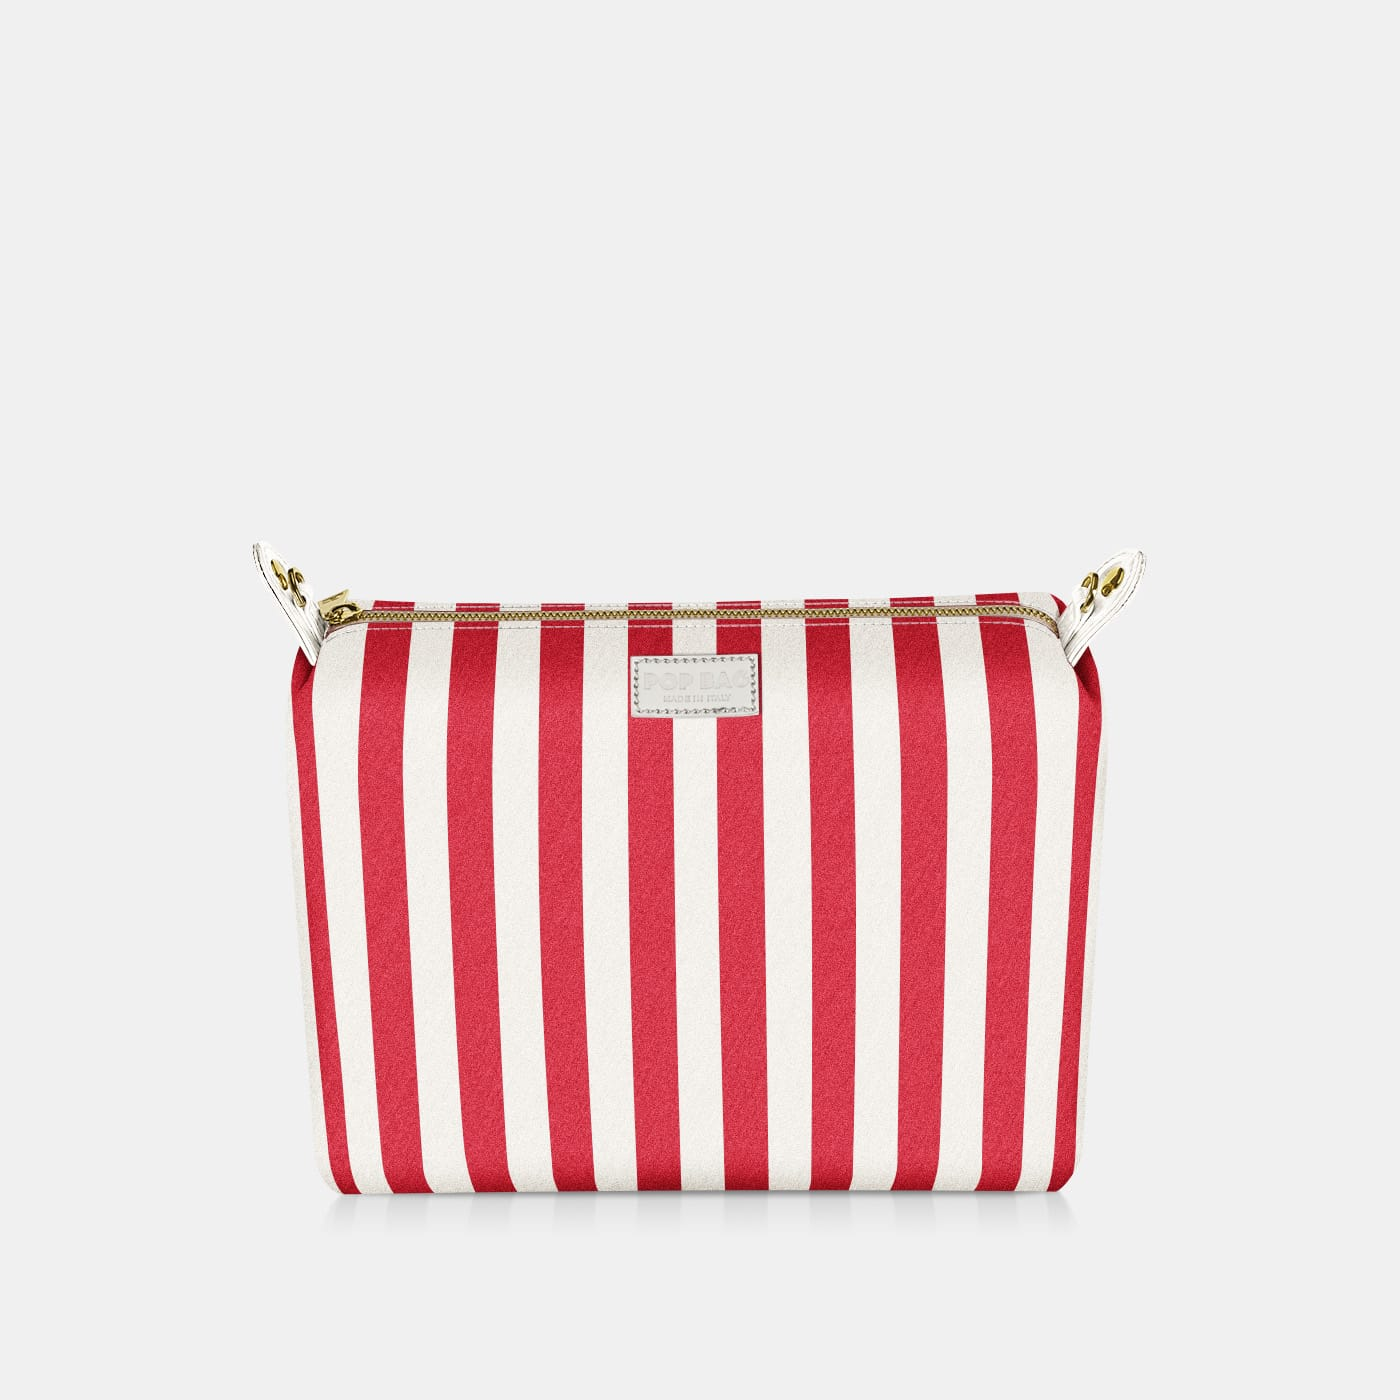 Bag in Bag Striped - Red Stripe - Medium